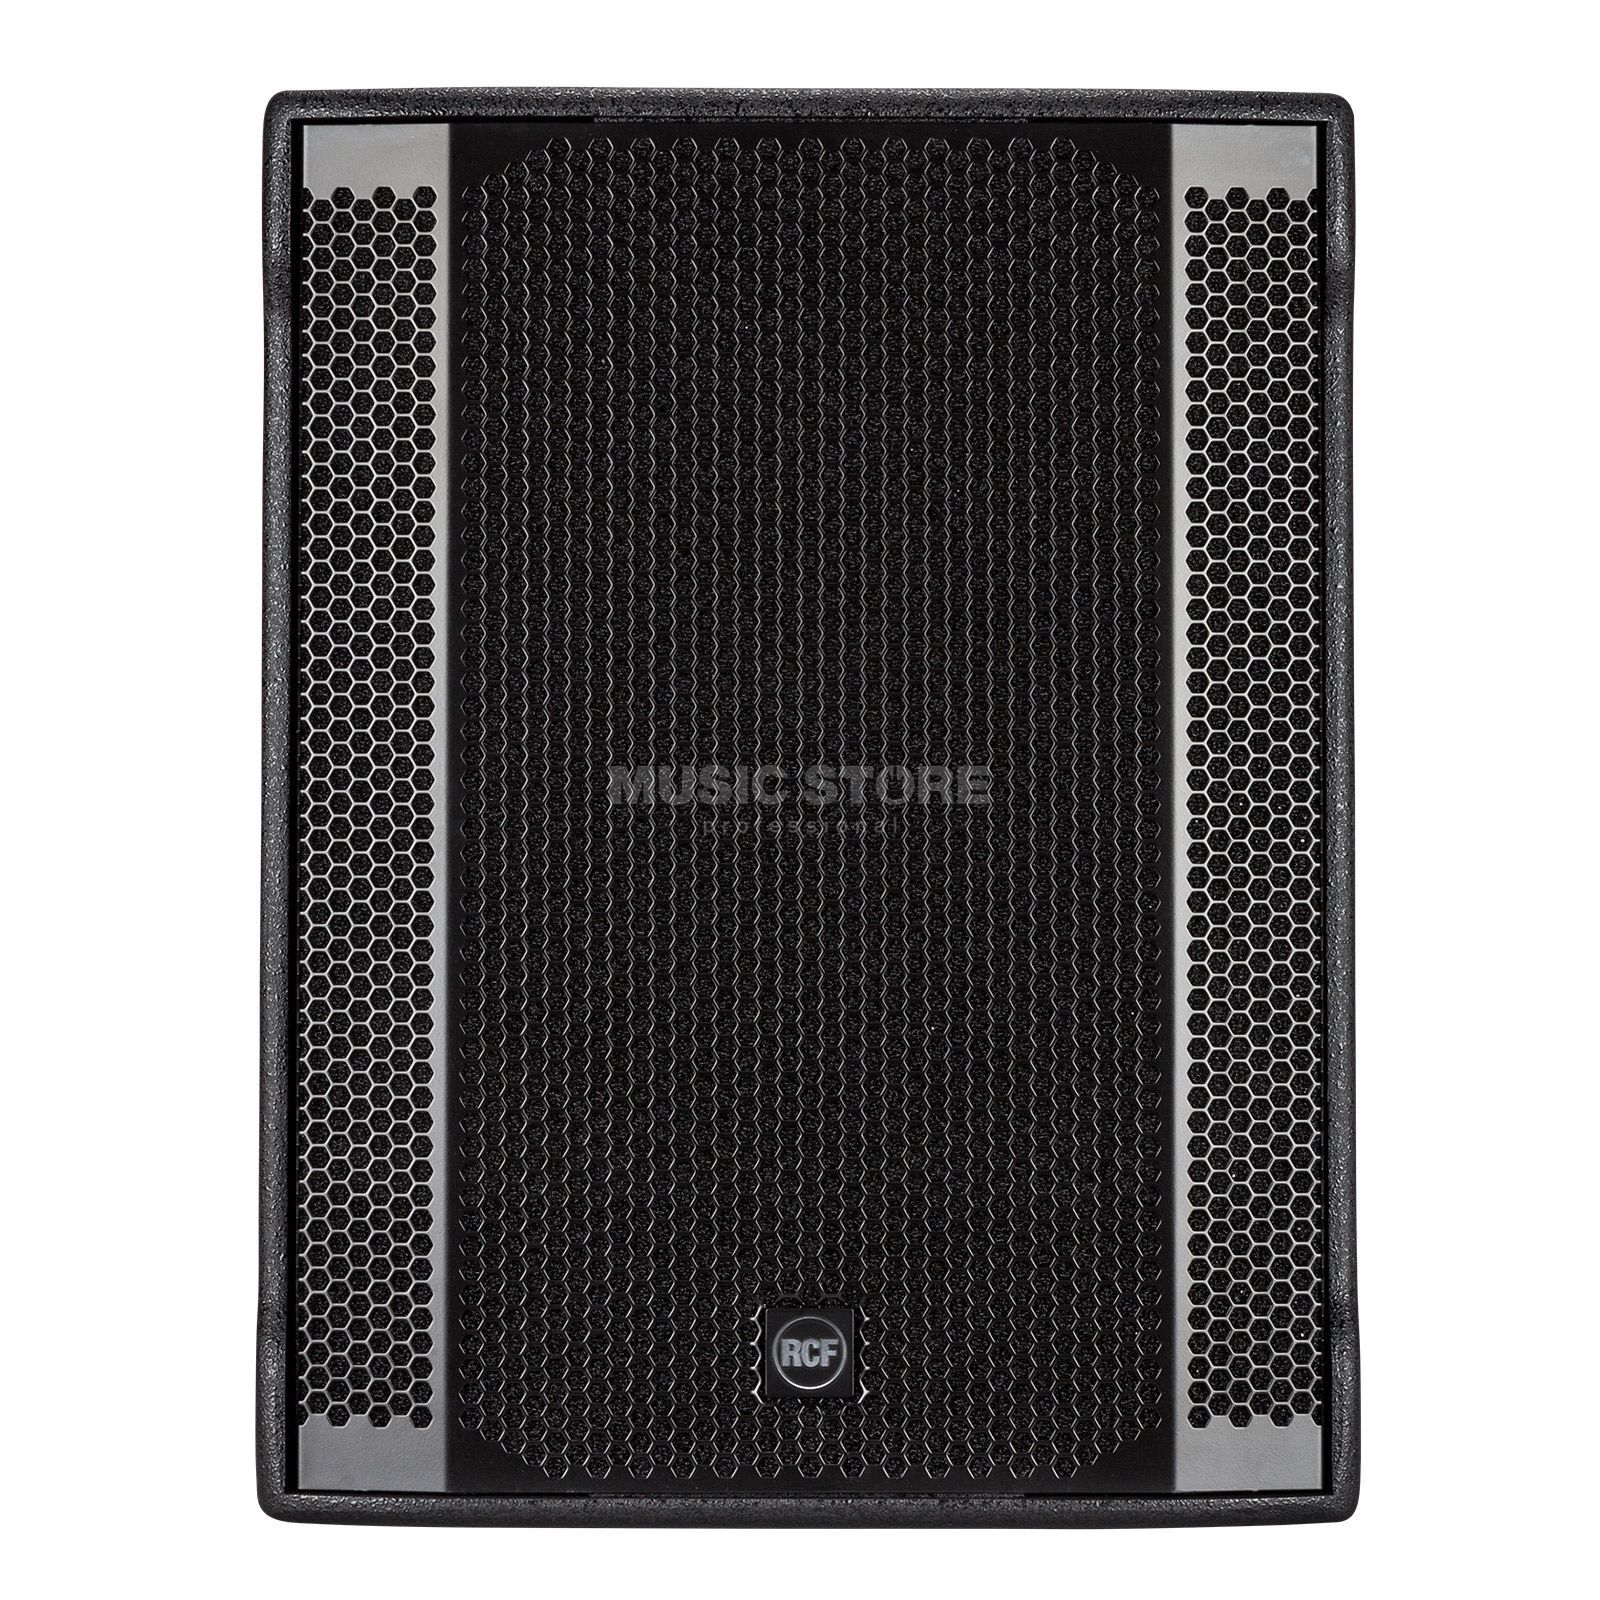 "RCF SUB 708-AS II 18"" Active-Subwoofer, 700 W Produktbillede"